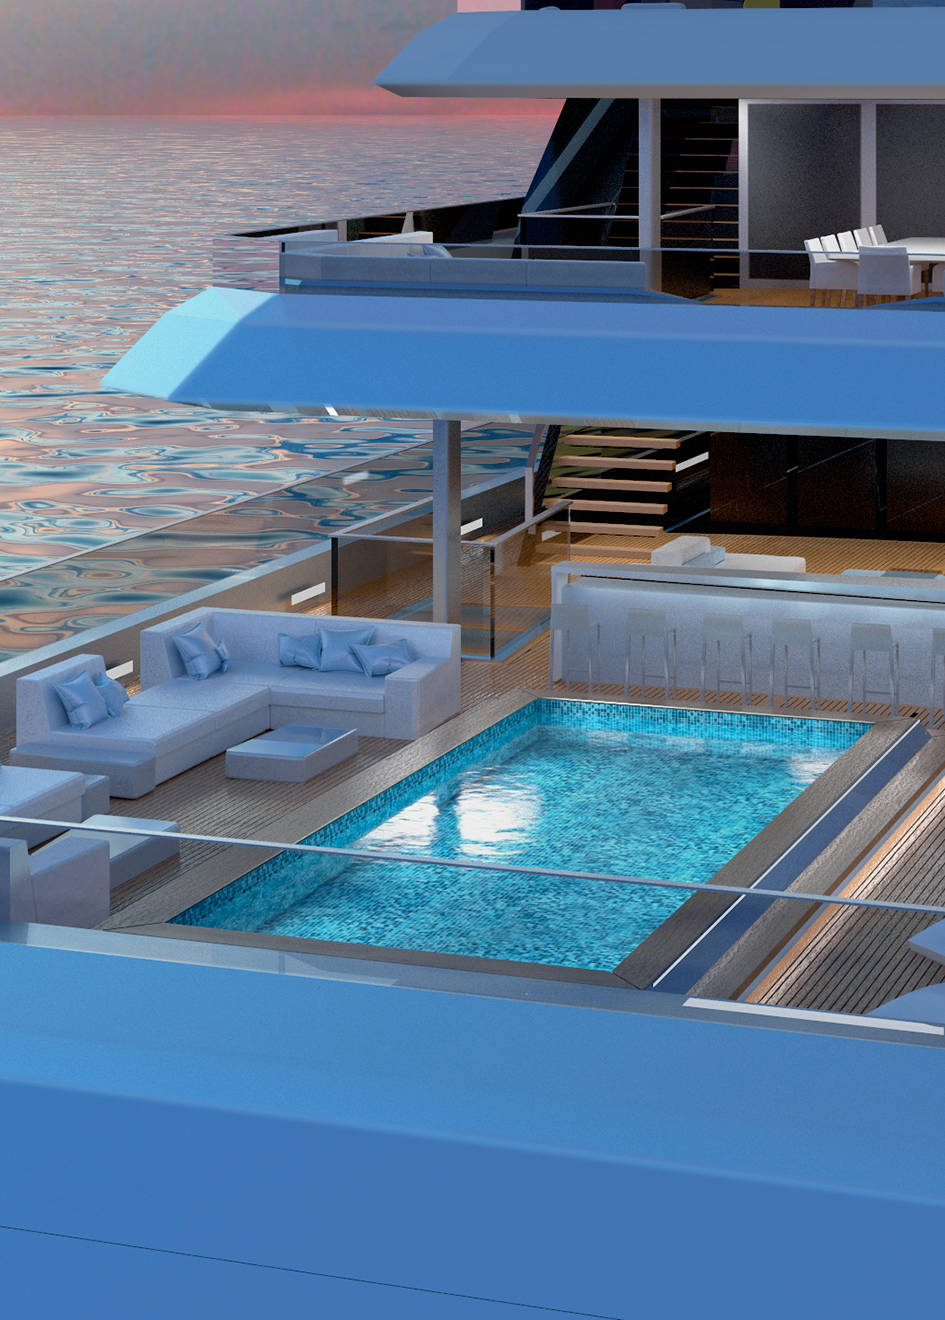 the-pool-of-the-80-metre-superyacht-concept-sunset